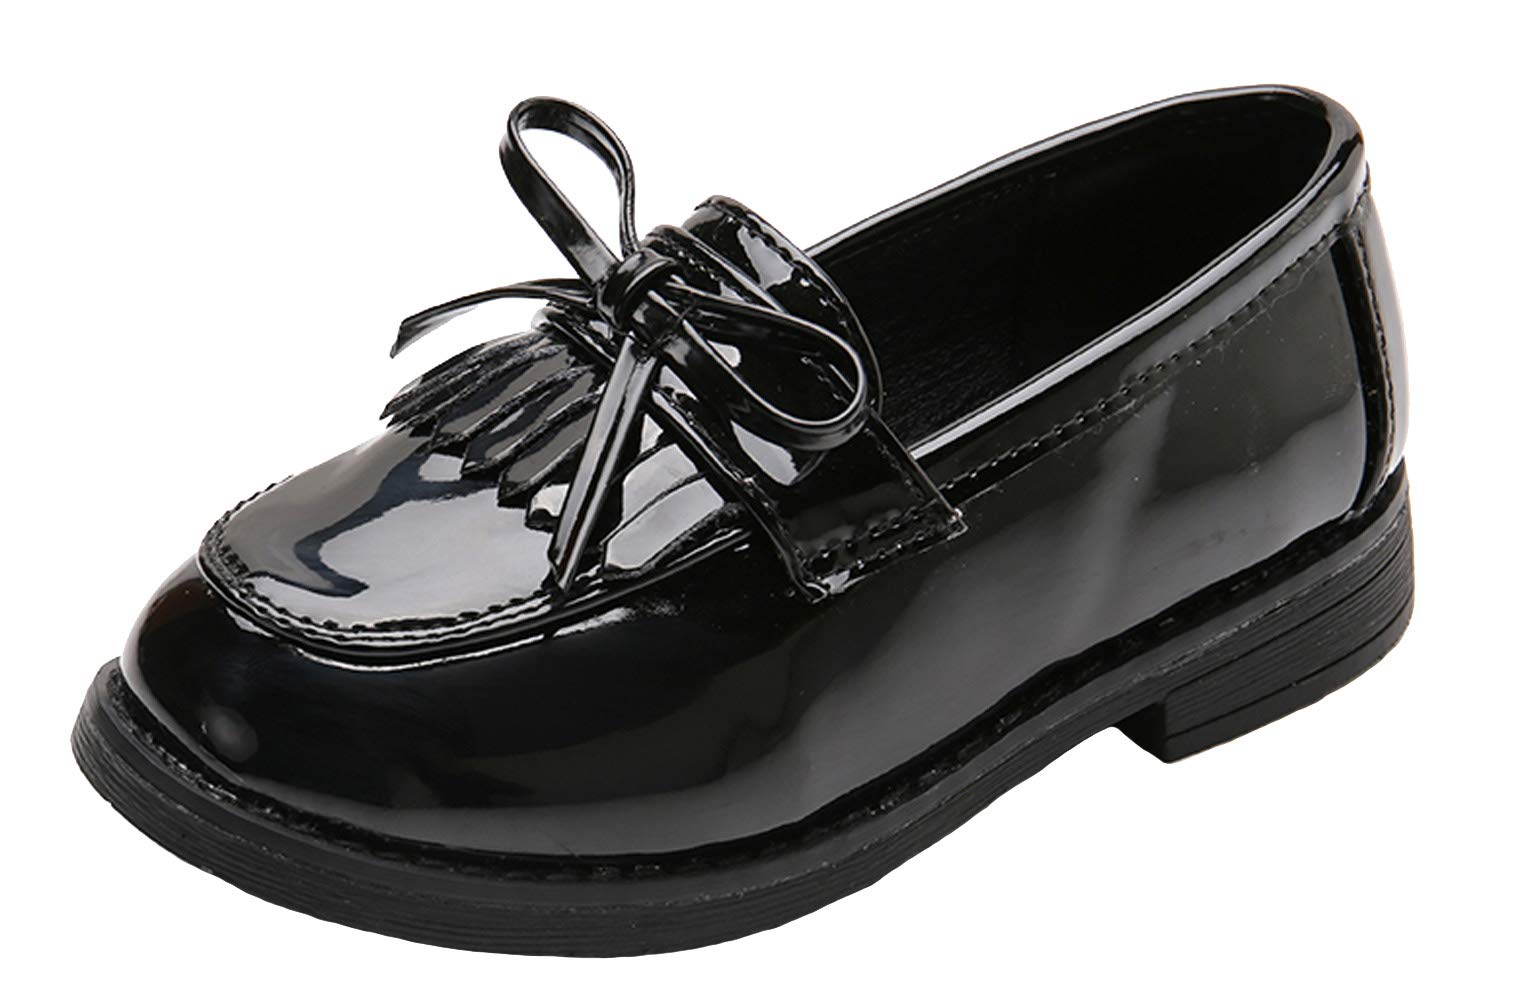 WUIWUIYU Girls' Patent Leather Slip-On Penny Loafers Flats Bow Tassel Oxfords Moccasins Dress Shoes